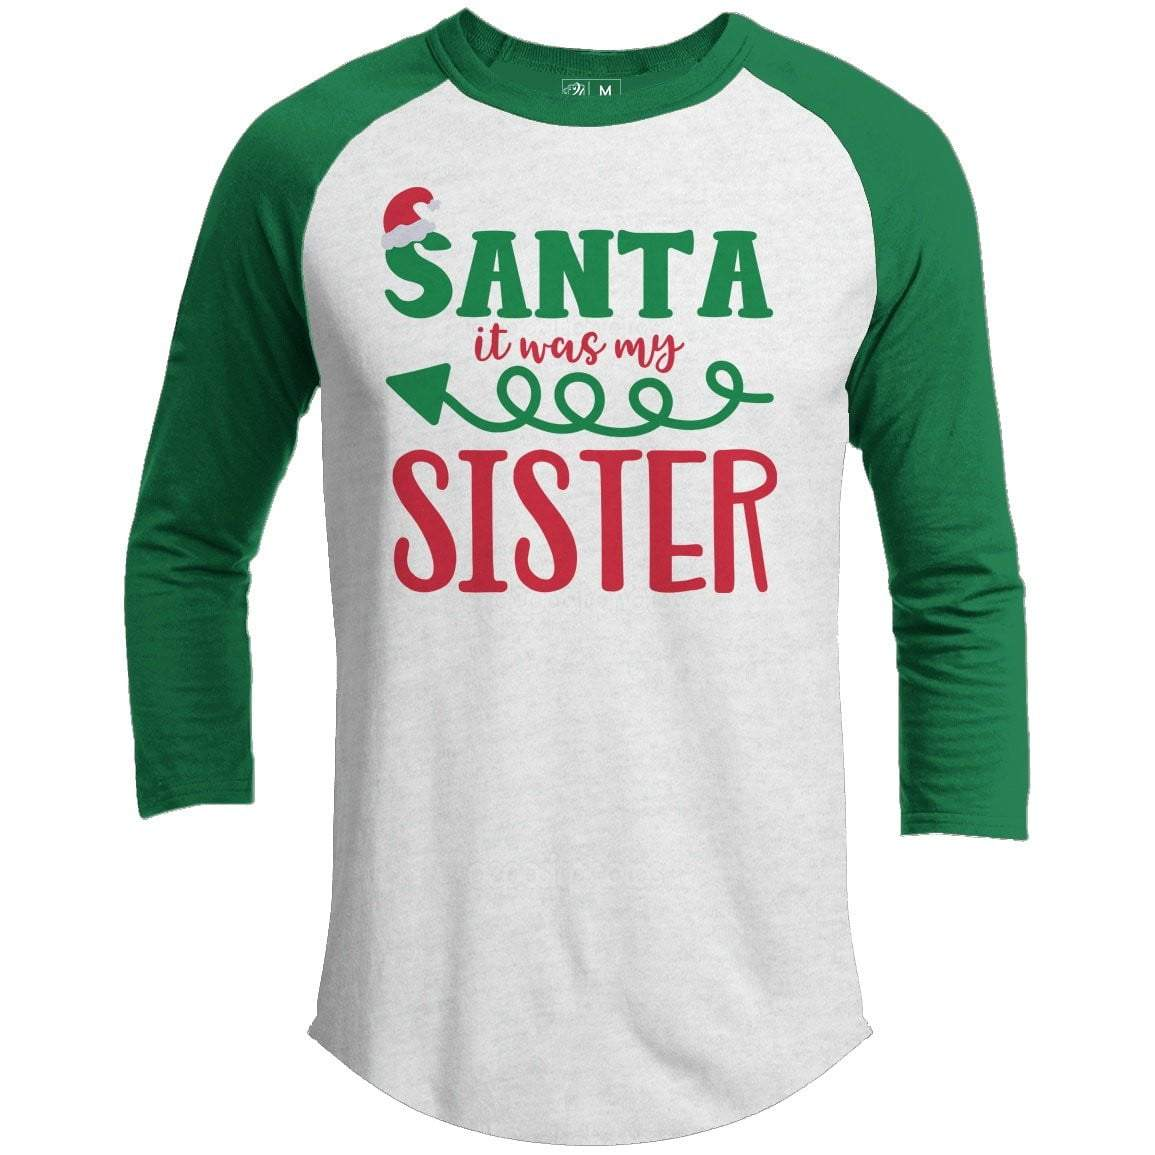 IT WAS MY SISTER Premium Youth Christmas Raglan